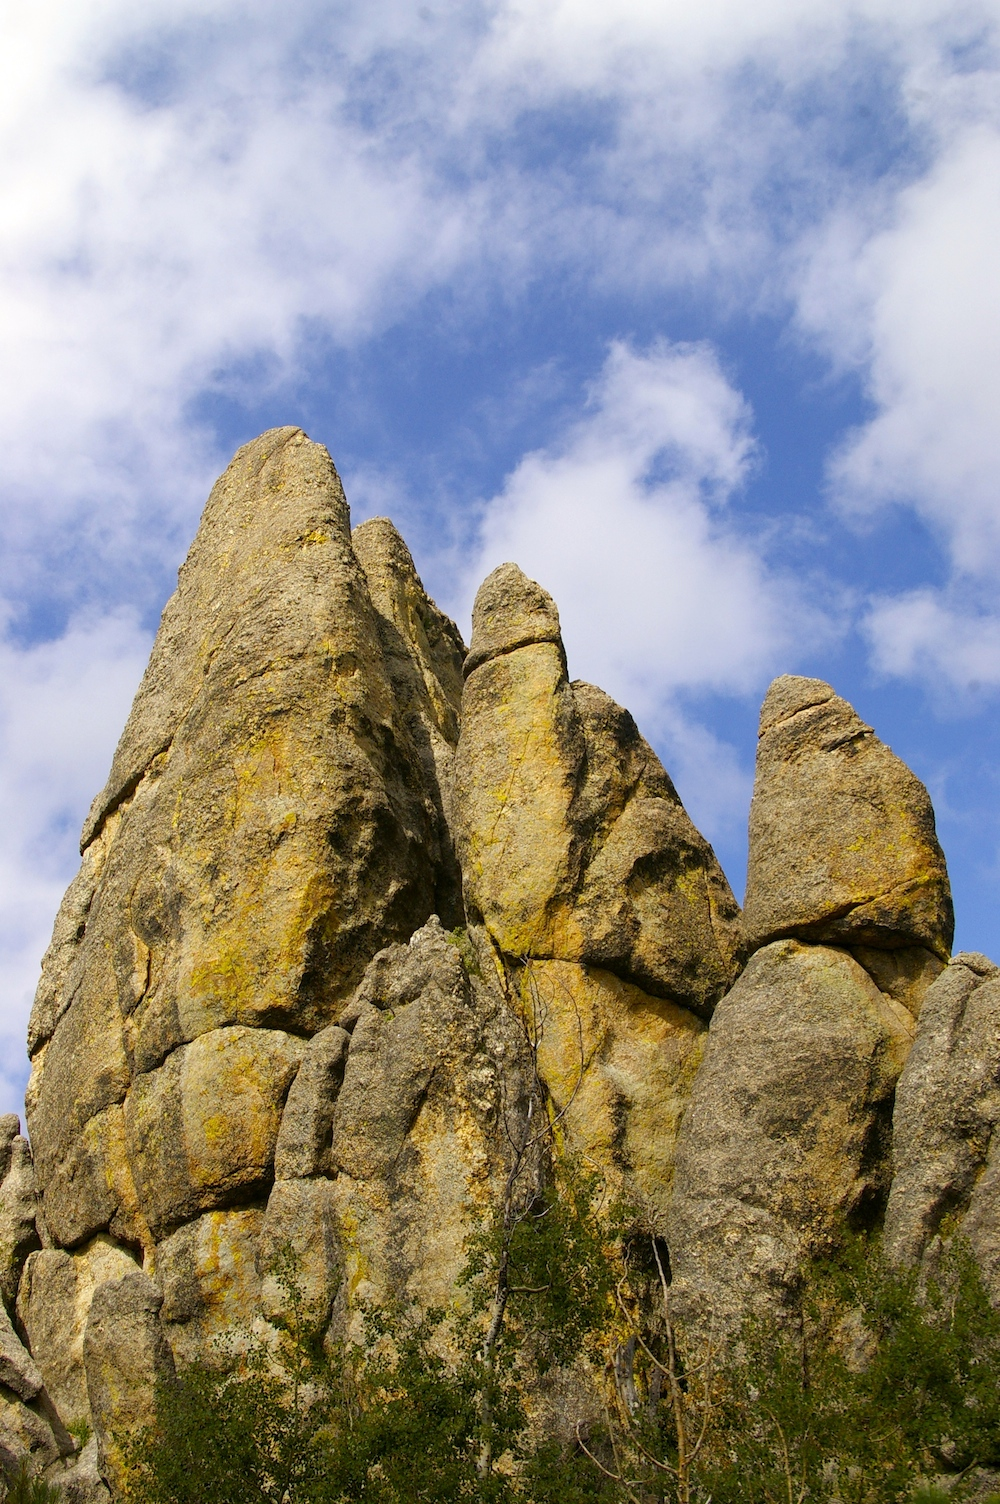 Rock formations at Custer State Park in Custer, South Dakota